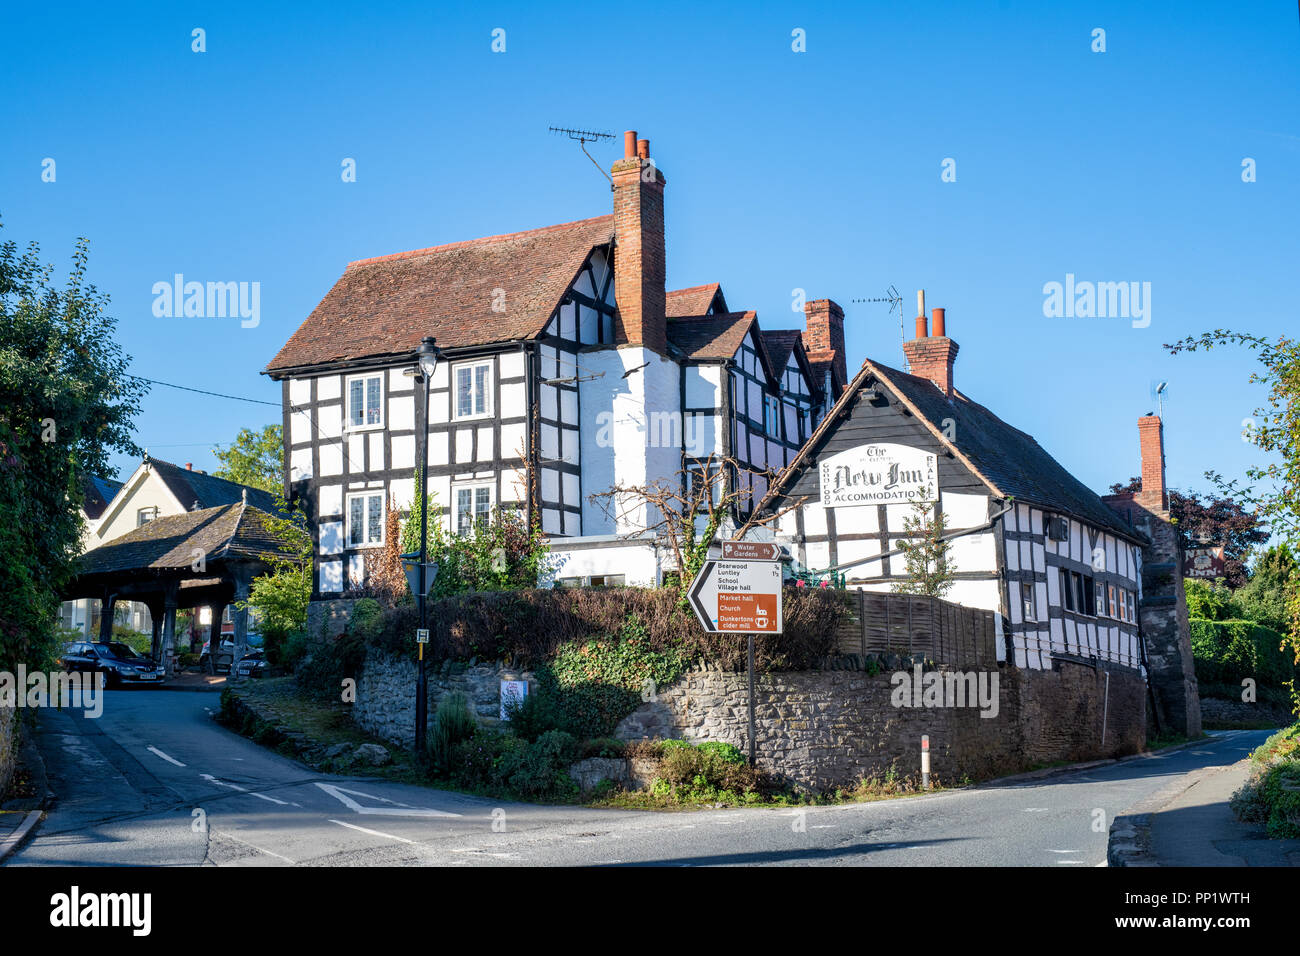 The New Inn. Black and White English Timber framed buildings. Pembridge. Herefordshire. England - Stock Image